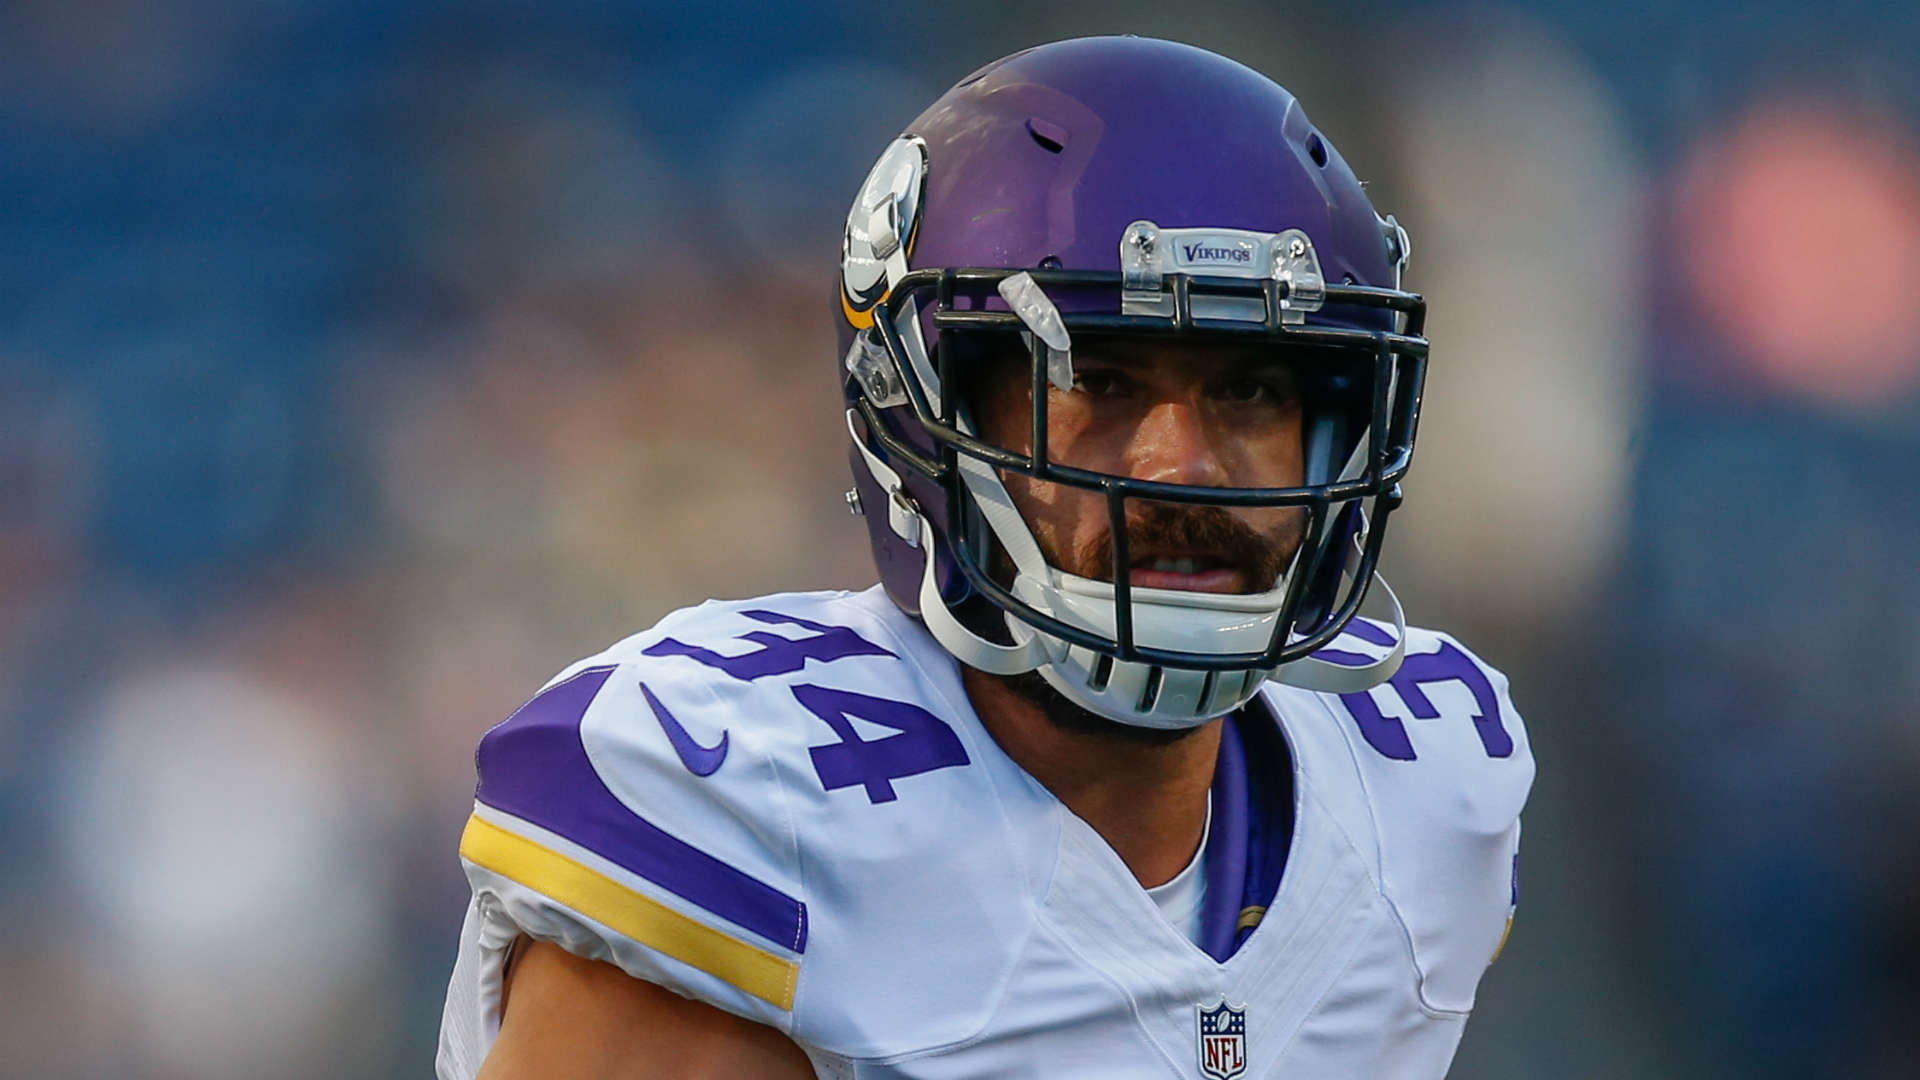 Vikings safety Andrew Sendejo suspended for hit on Mike Wallace